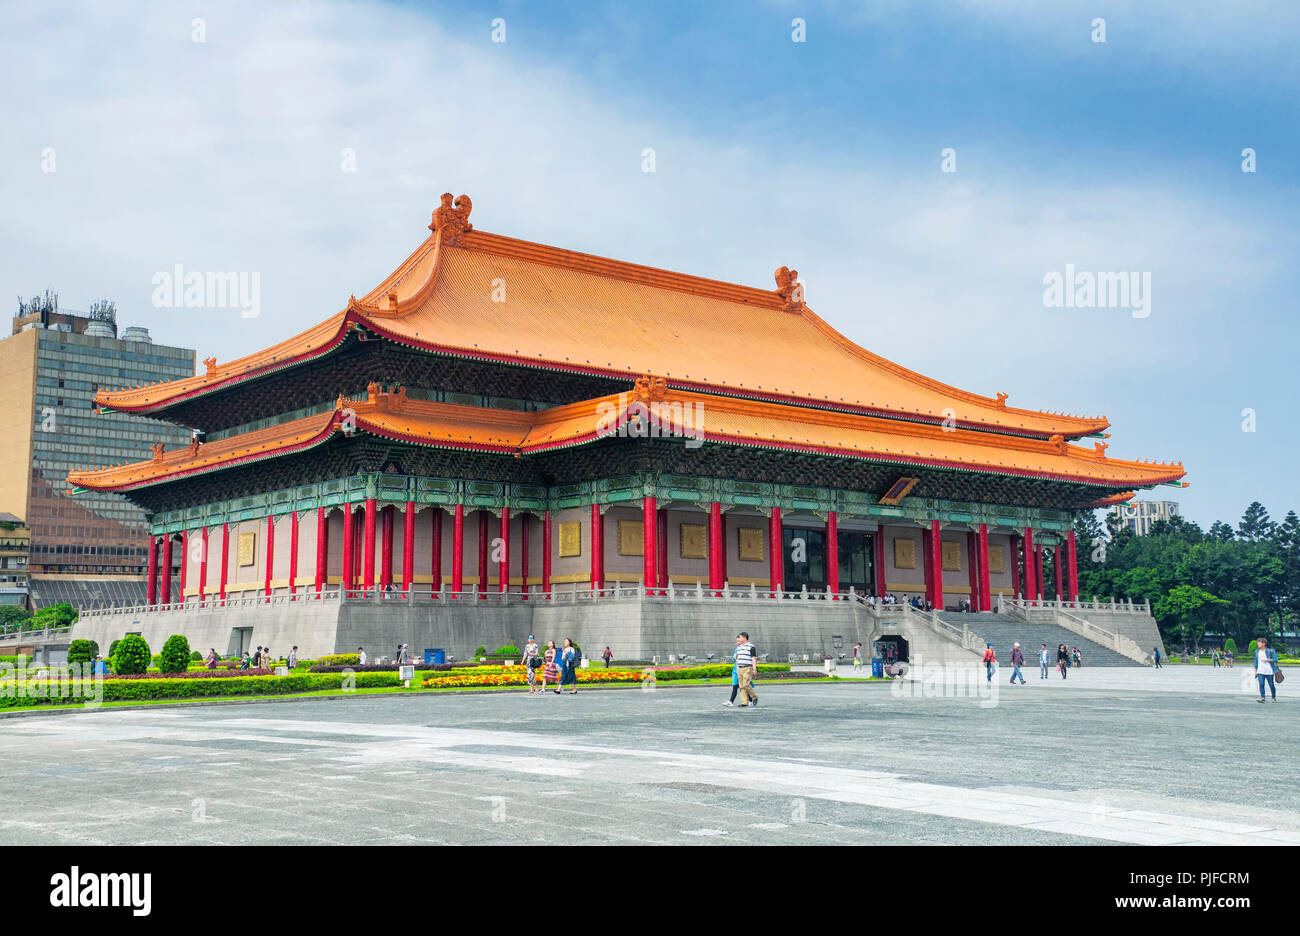 March 31, 2018. Taipei, Taiwan.  Tourists visiting liberty square near the national theater hall in the city of Taipei, Taiwan. - Stock Image